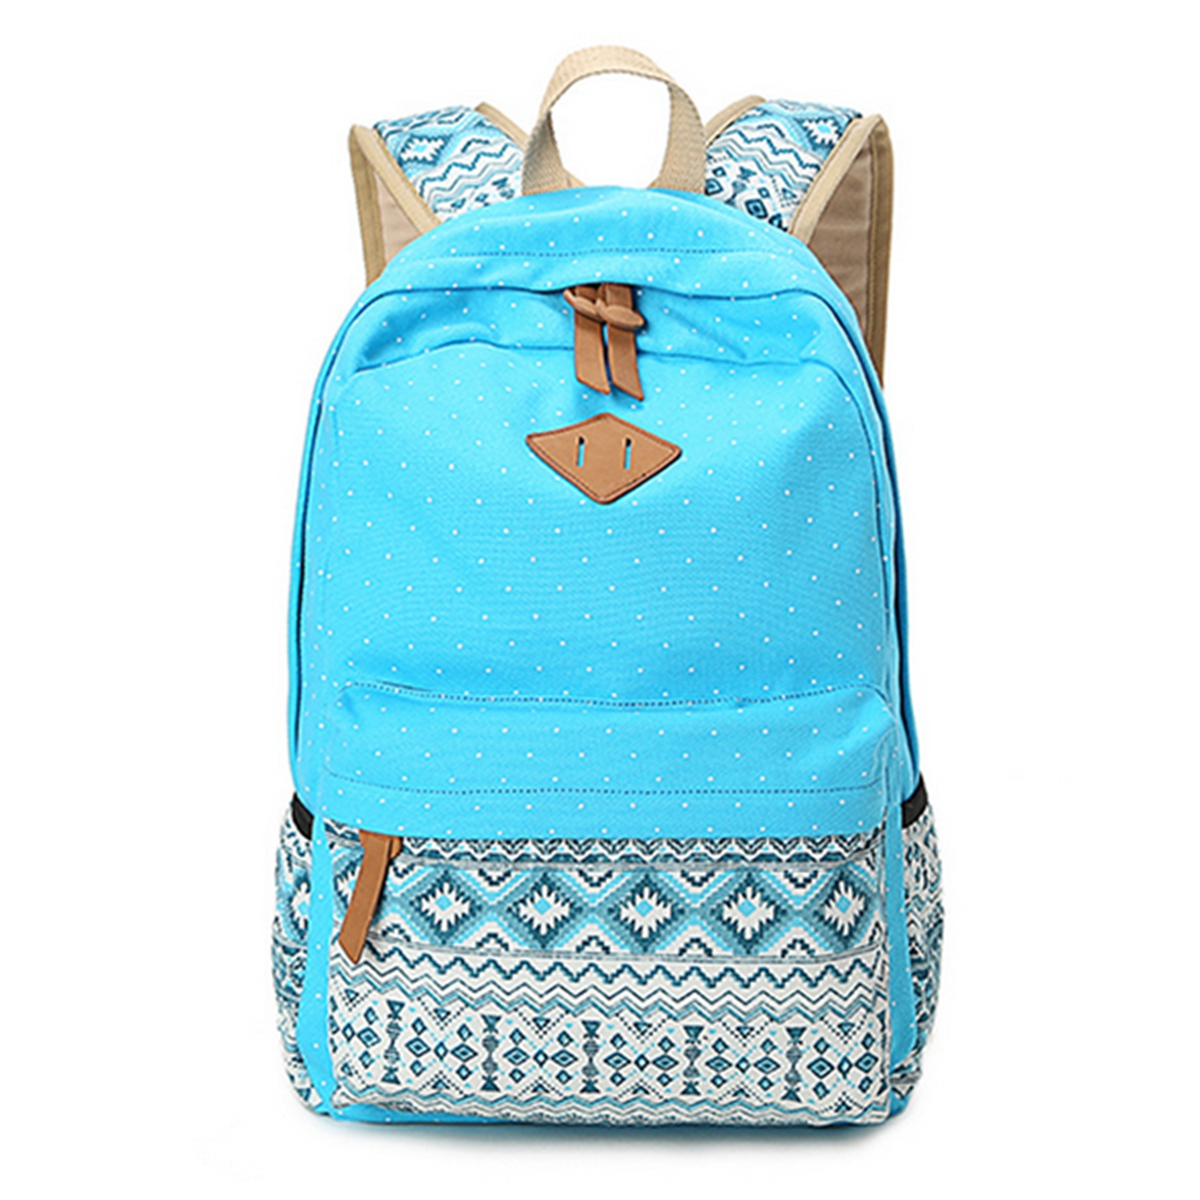 You searched for: girl canvas backpack! Etsy is the home to thousands of handmade, vintage, and one-of-a-kind products and gifts related to your search. No matter what you're looking for or where you are in the world, our global marketplace of sellers can help you .